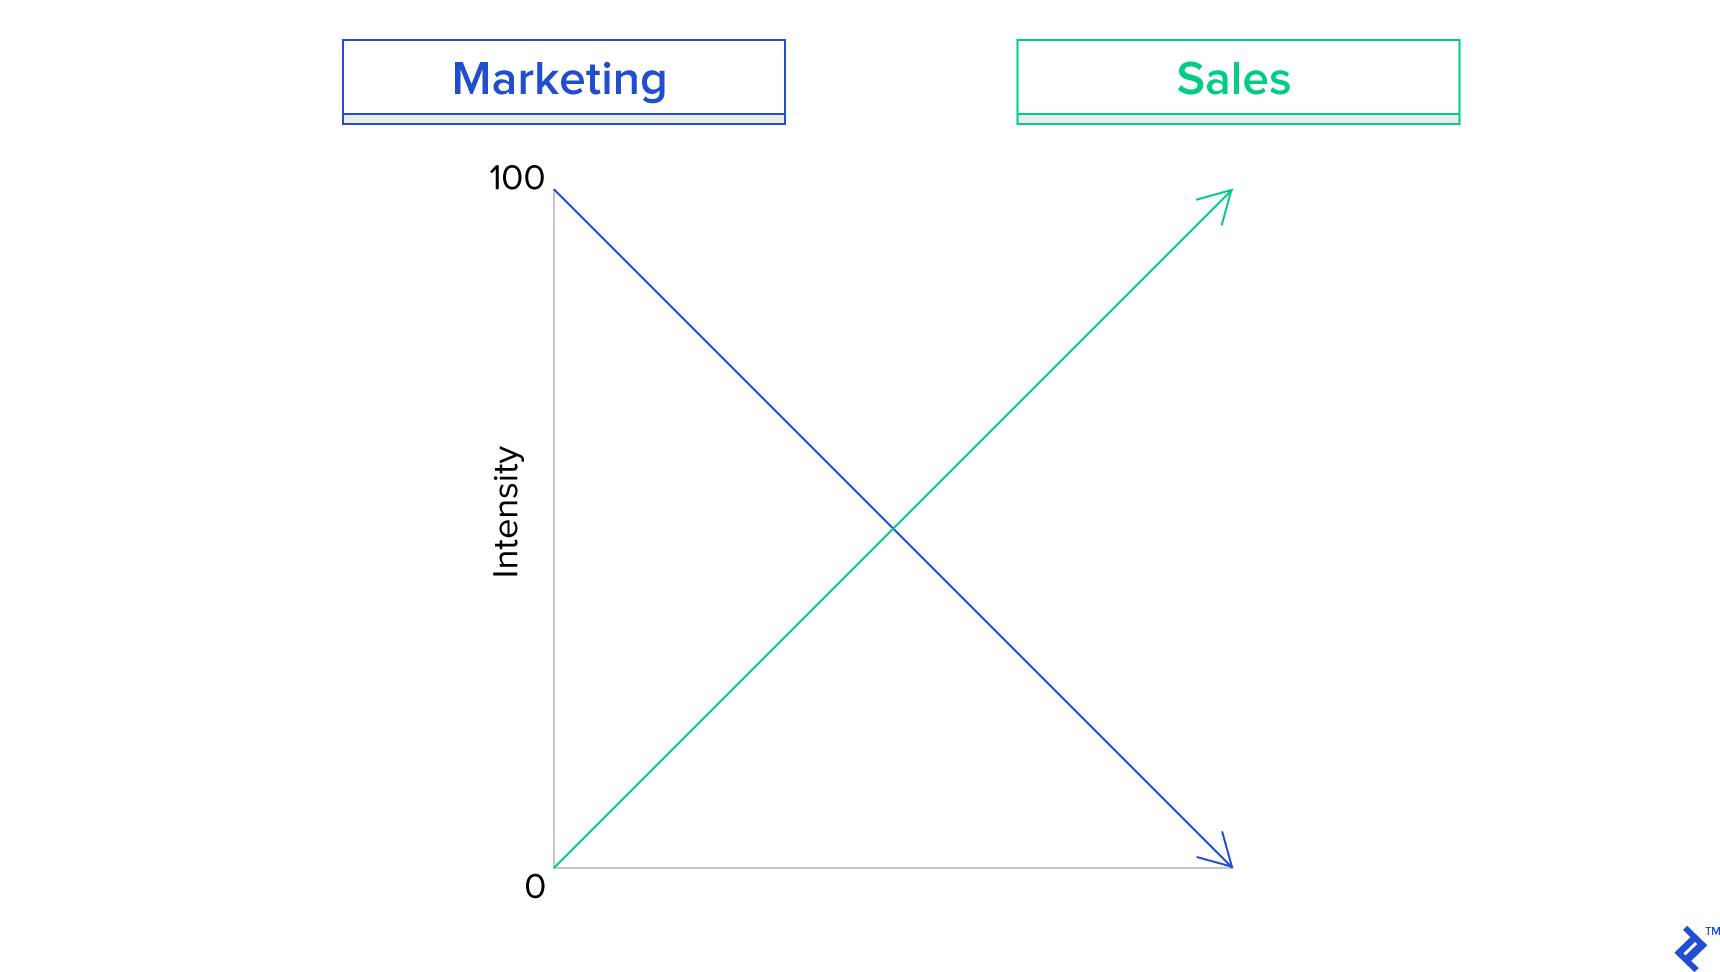 Diagram of the relationship between marketing and sales